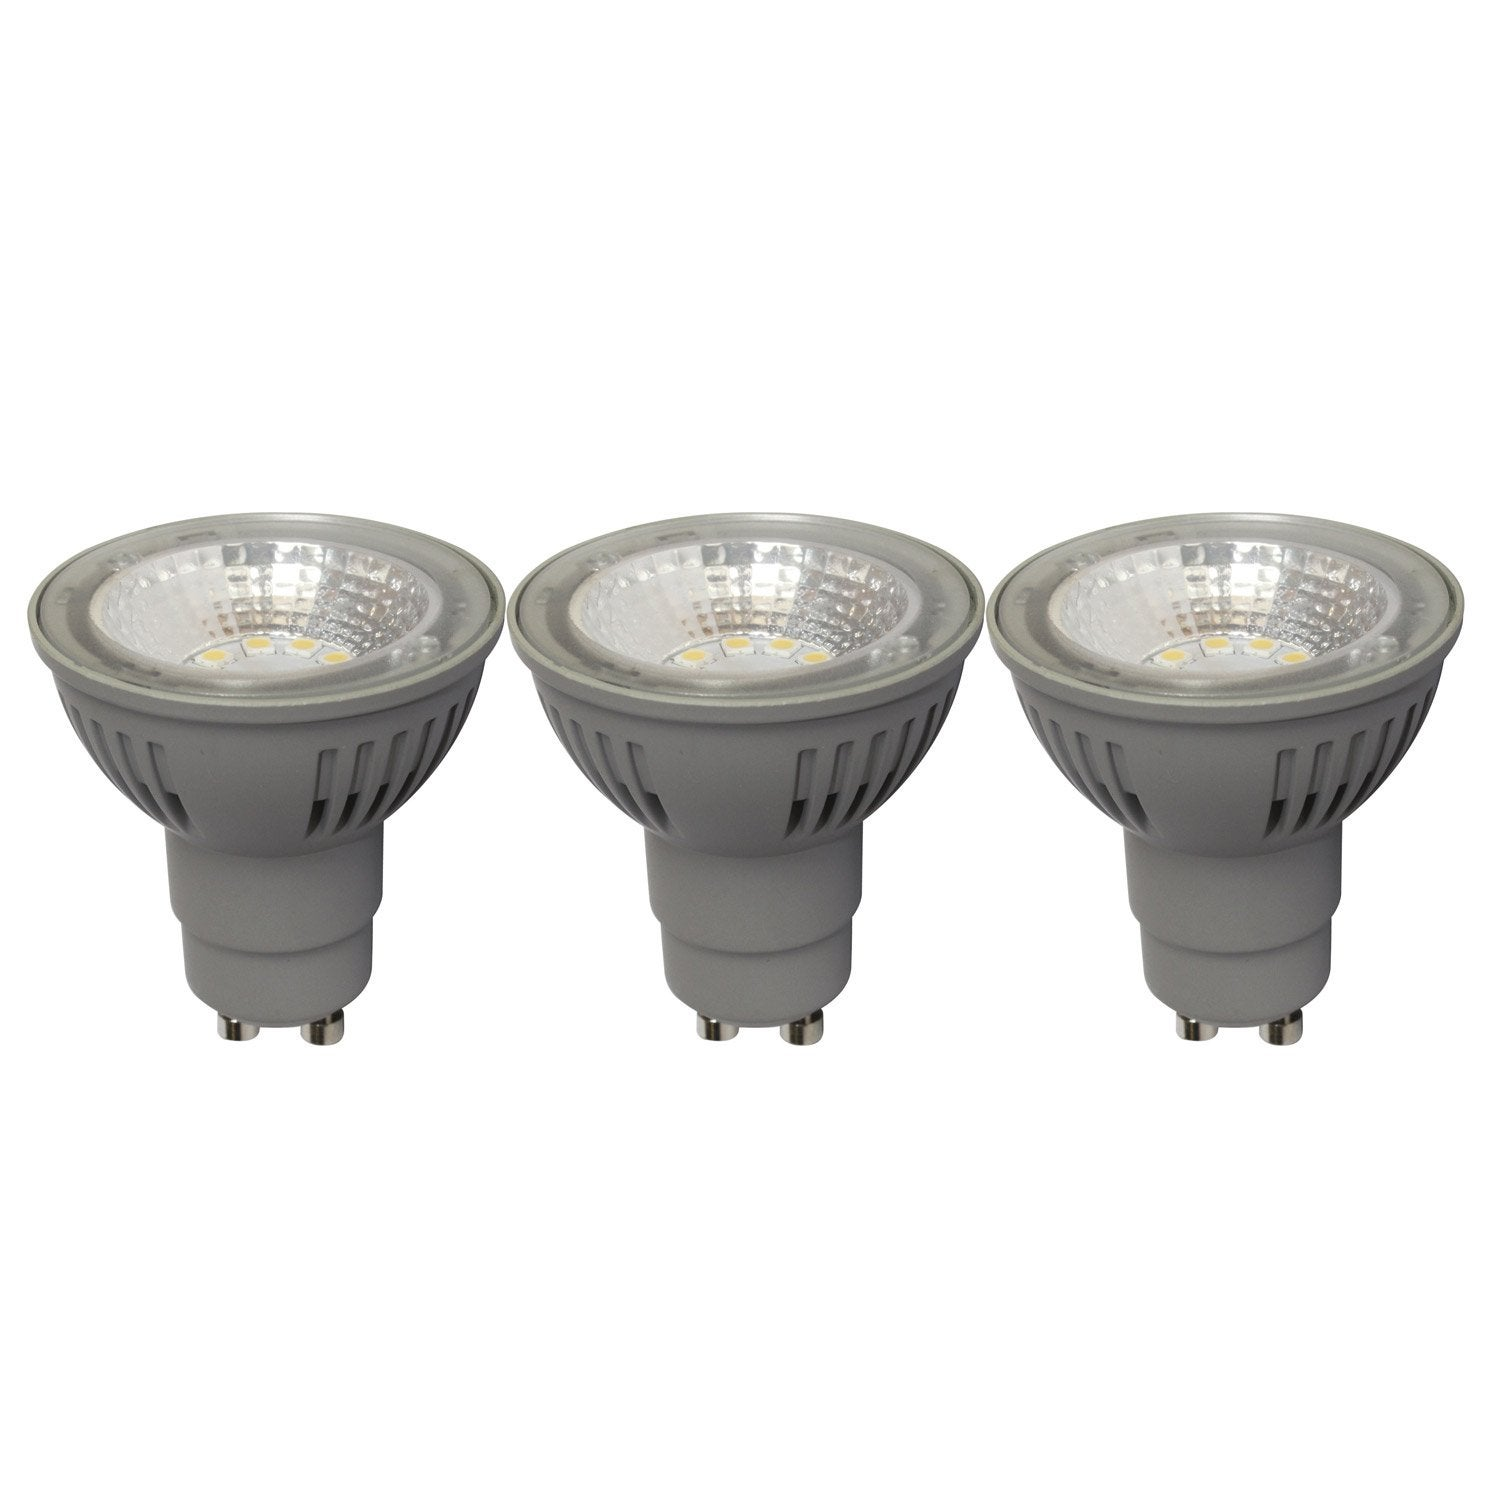 Lot de 3 ampoules r flecteur led 5w 50w lumi re douce for Ampoule 12v 20w leroy merlin